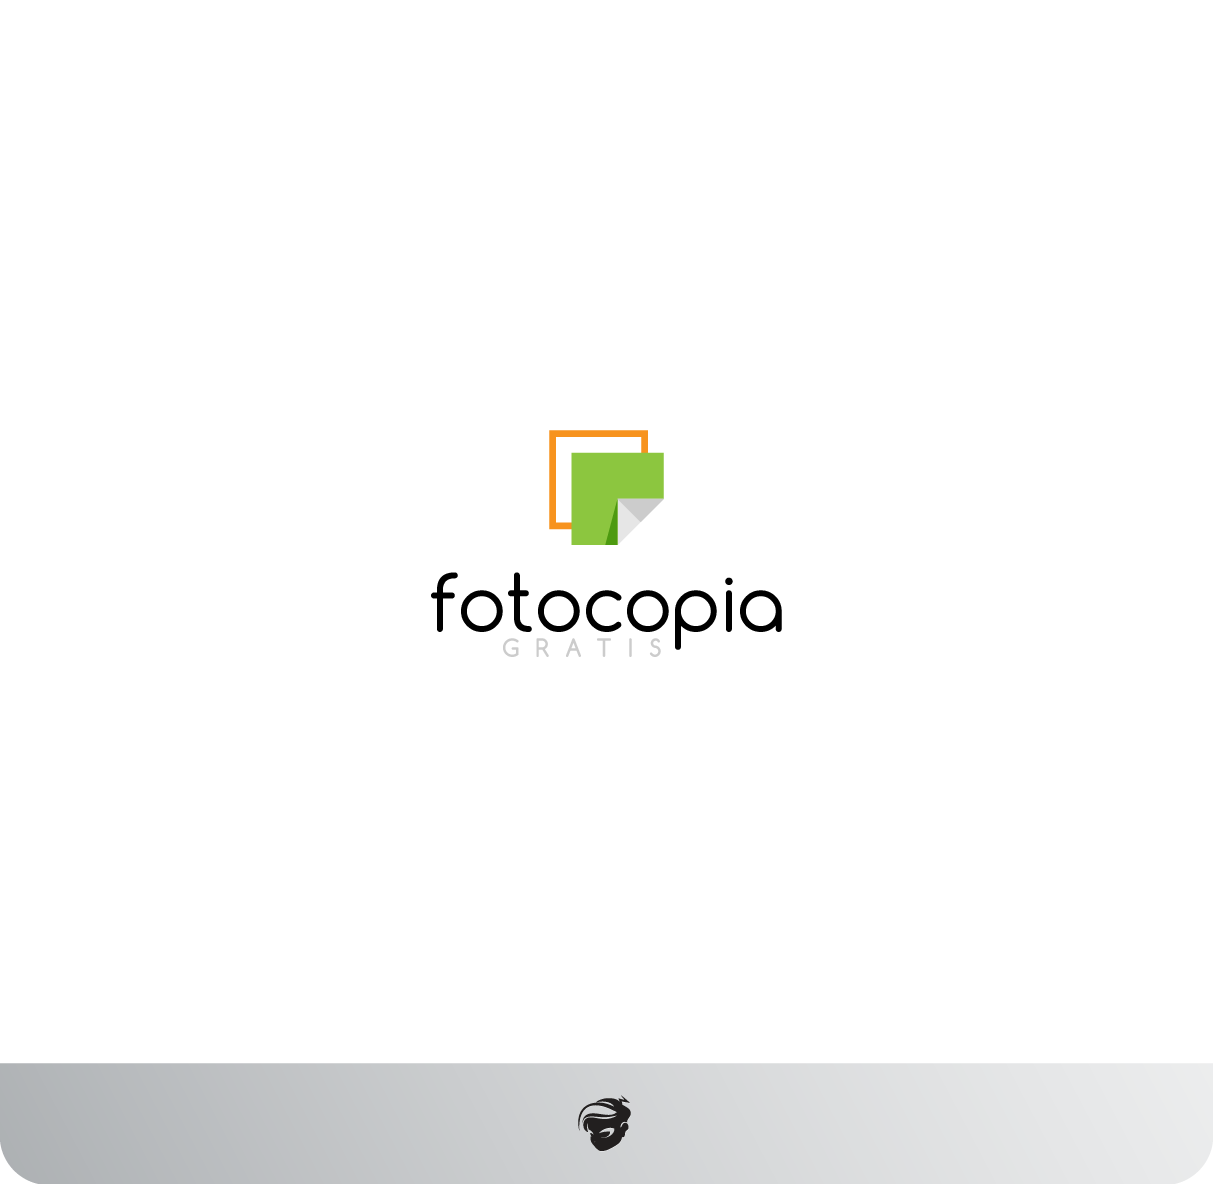 Logo Design by zesthar - Entry No. 118 in the Logo Design Contest Inspiring Logo Design for Fotocopiagratis.